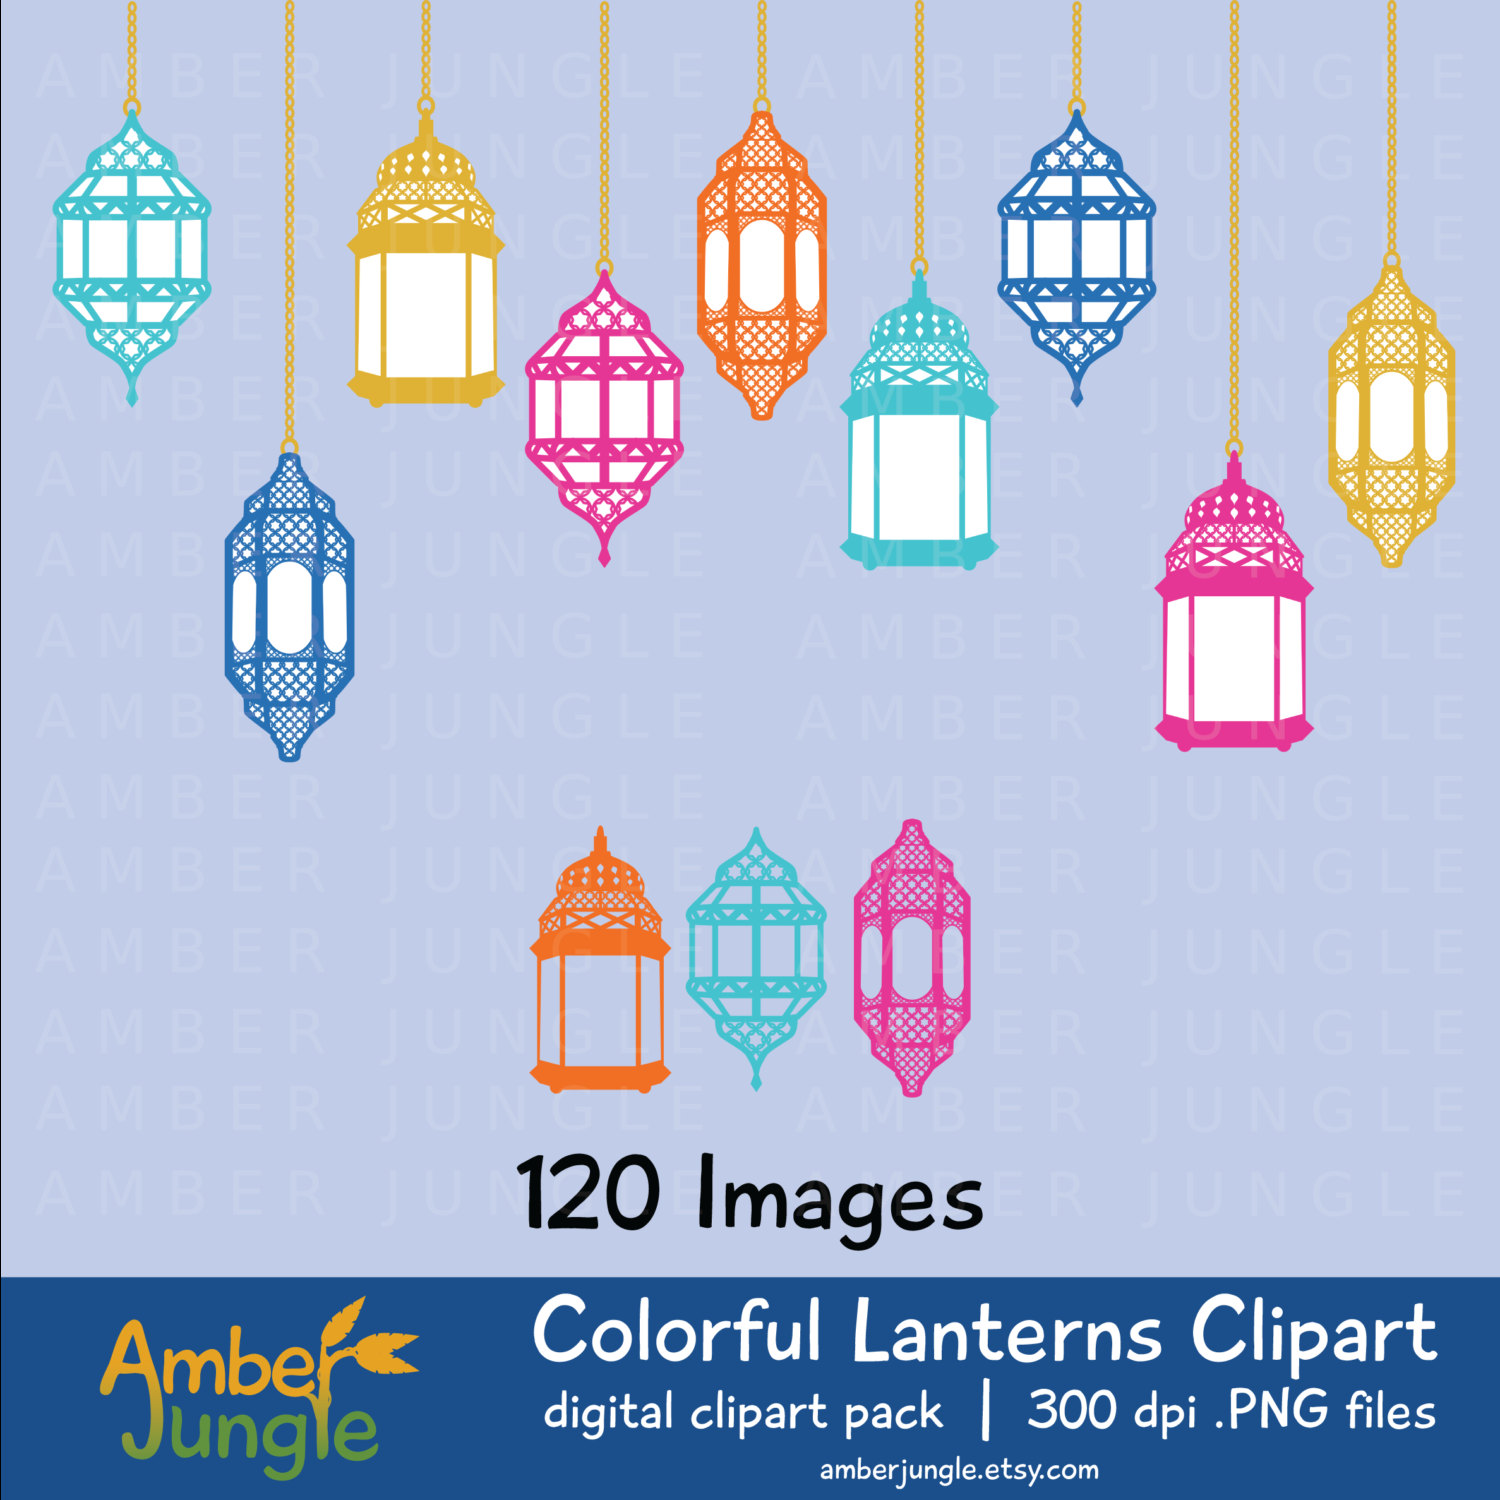 Colorful Lantern Clipart Moroccan Clip Art Eastern by AmberJungle.